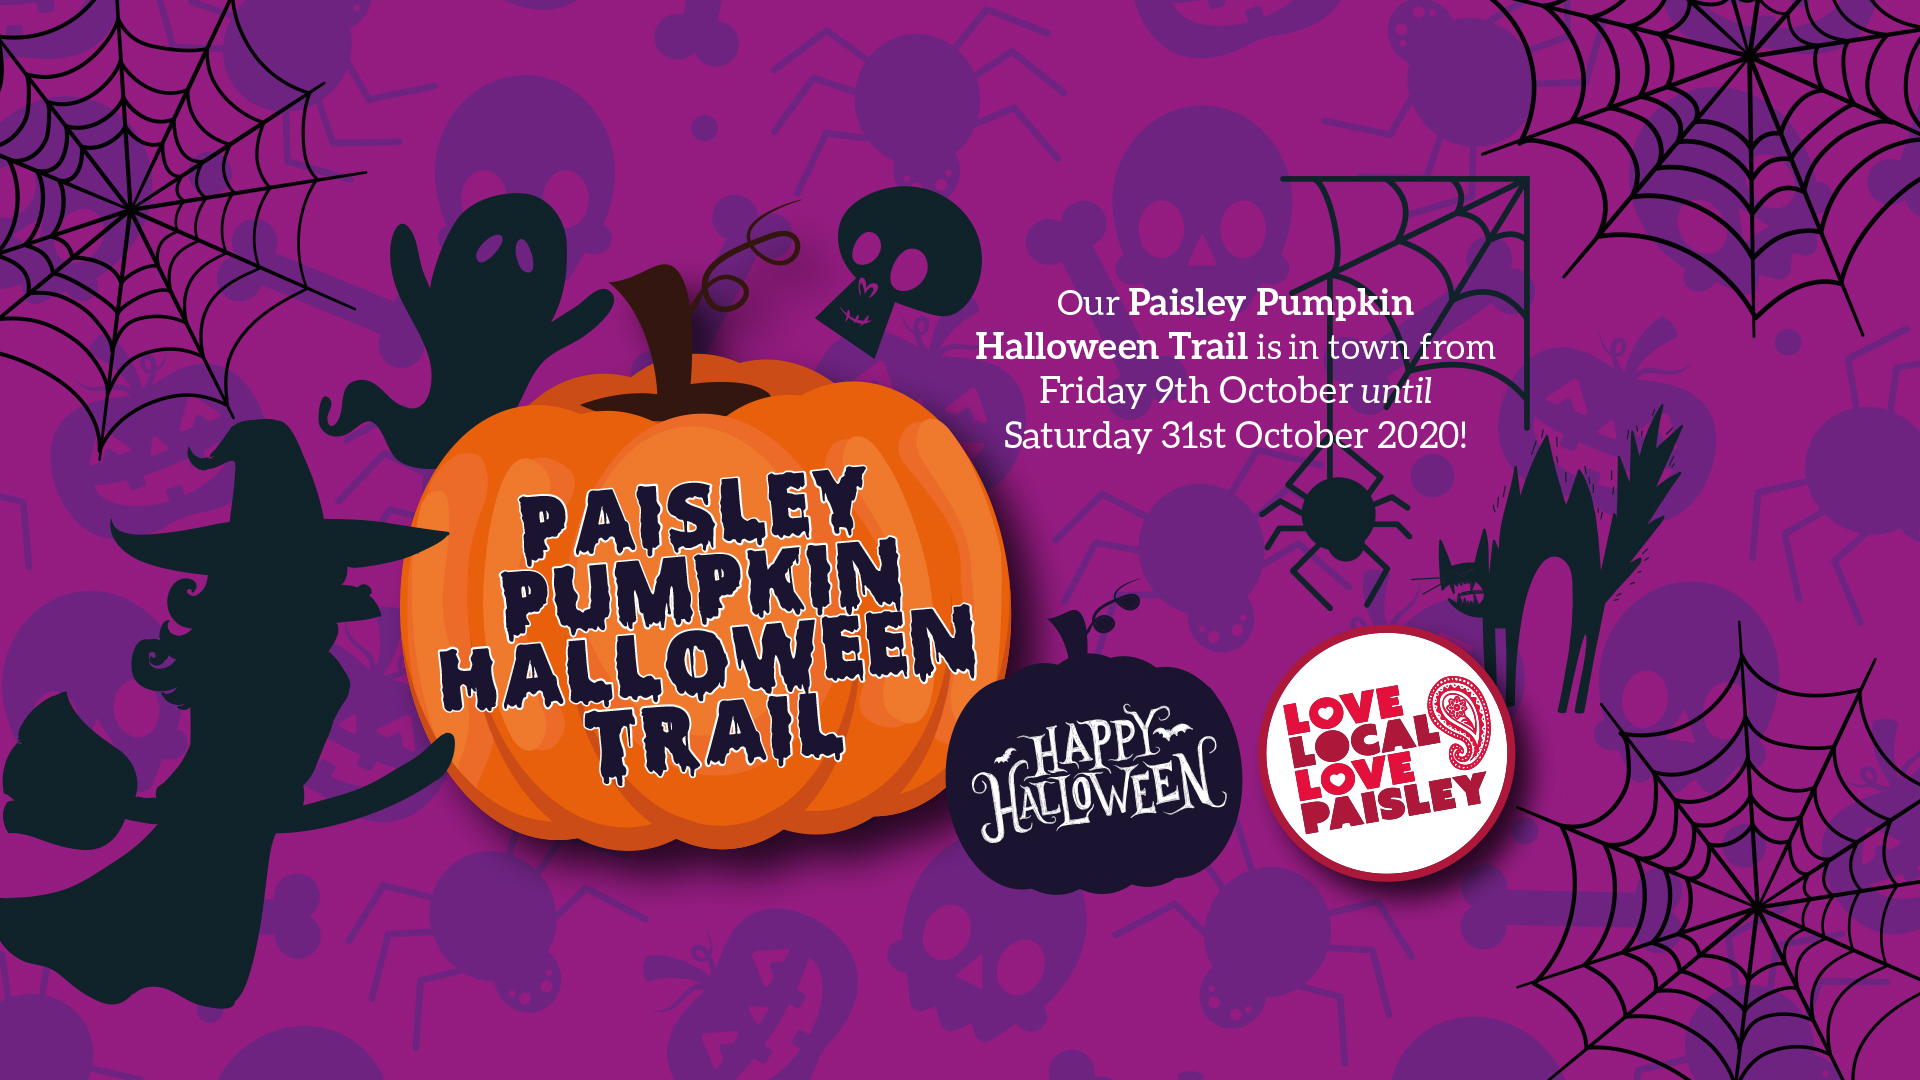 Paisley-First-Halloween-Trail-1920x1080FB-02-10-2020